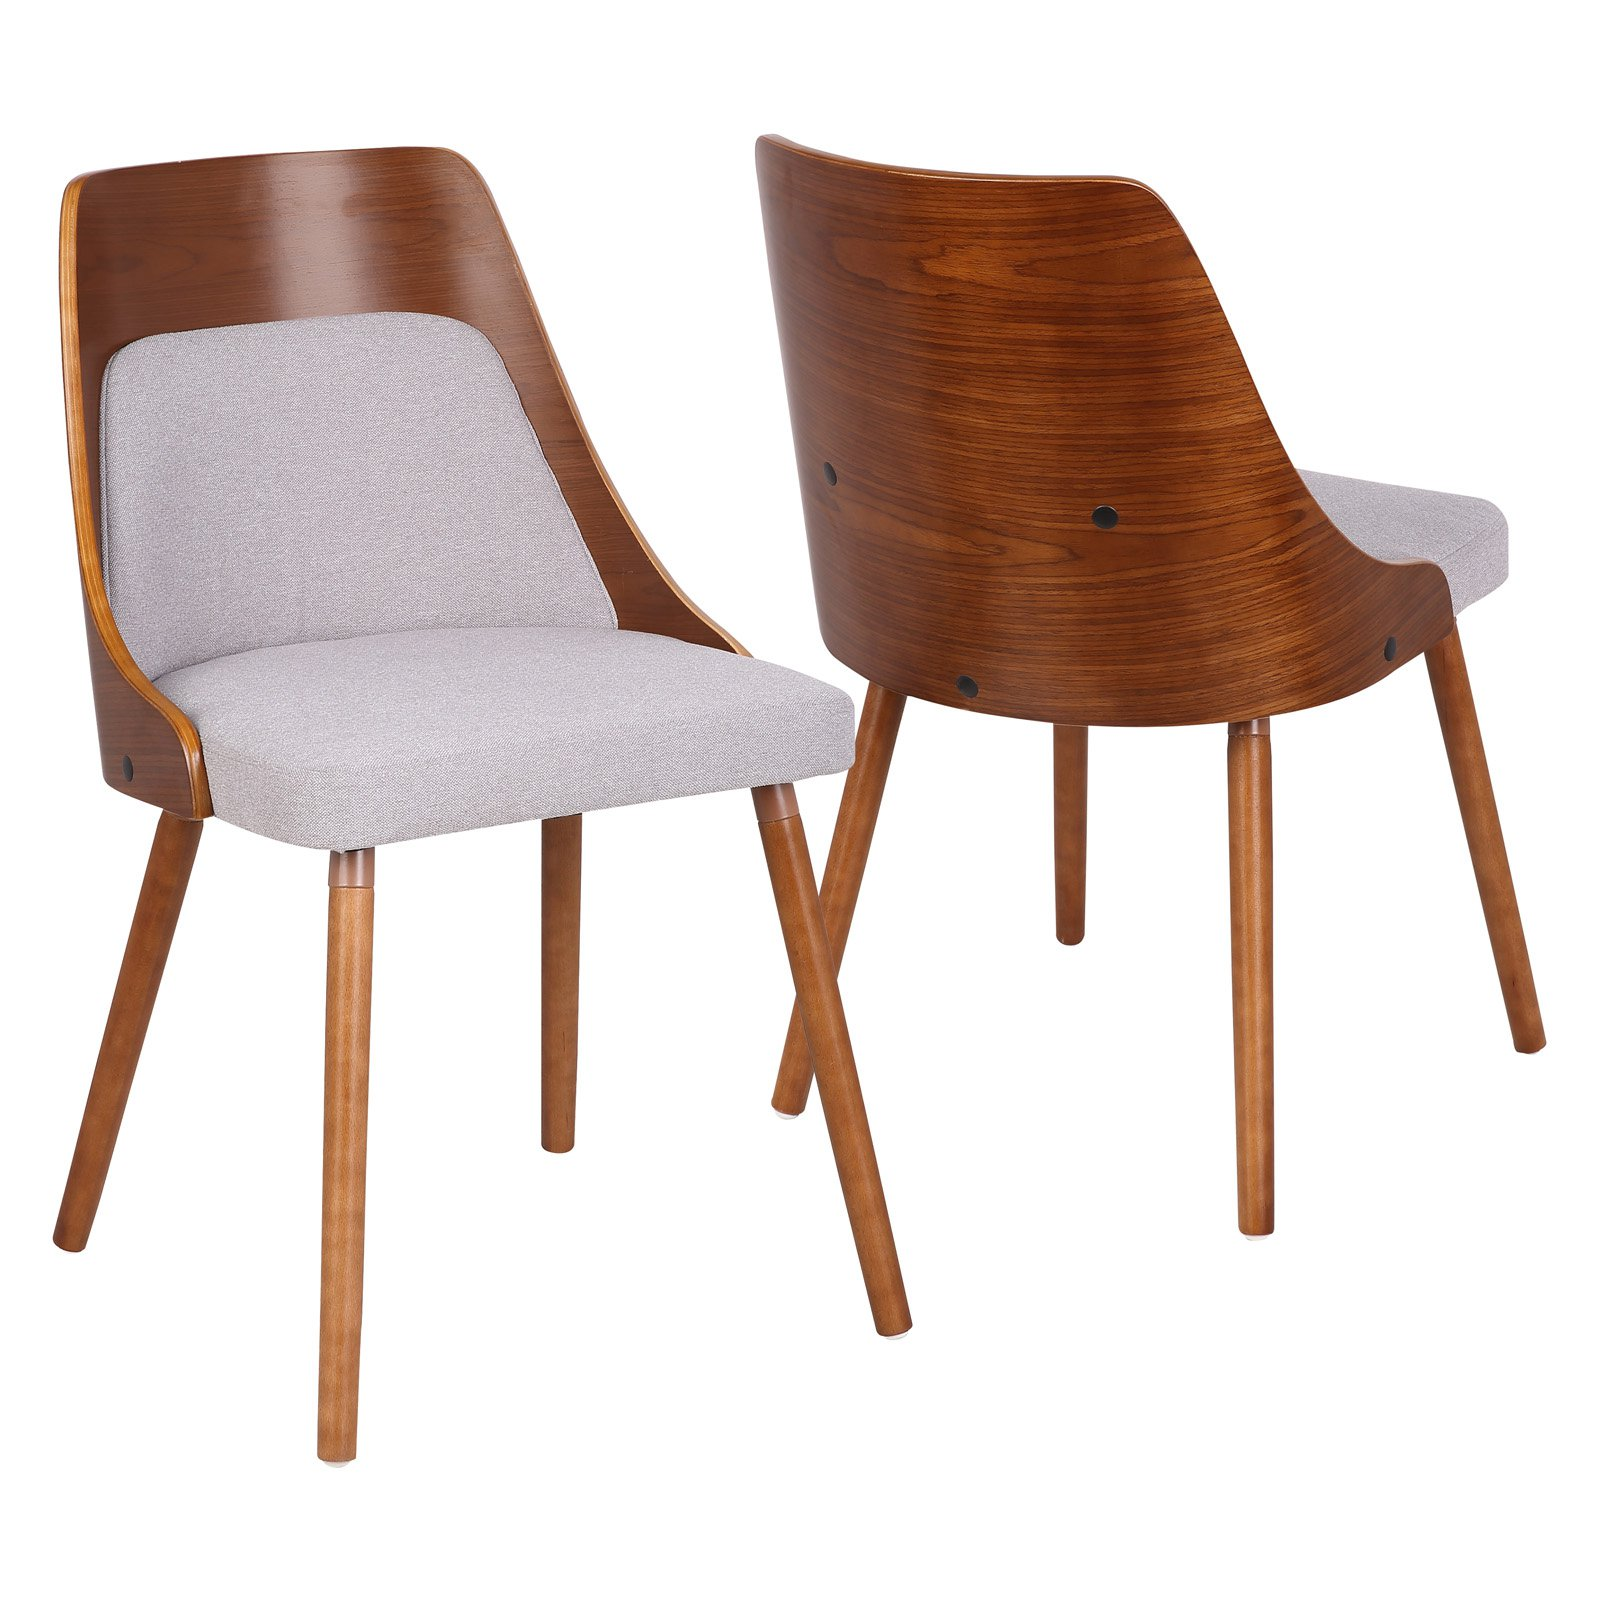 Anabelle Mid-Century Modern Dining Chair in Walnut and Cream Fabric by Lumisource by LumiSource